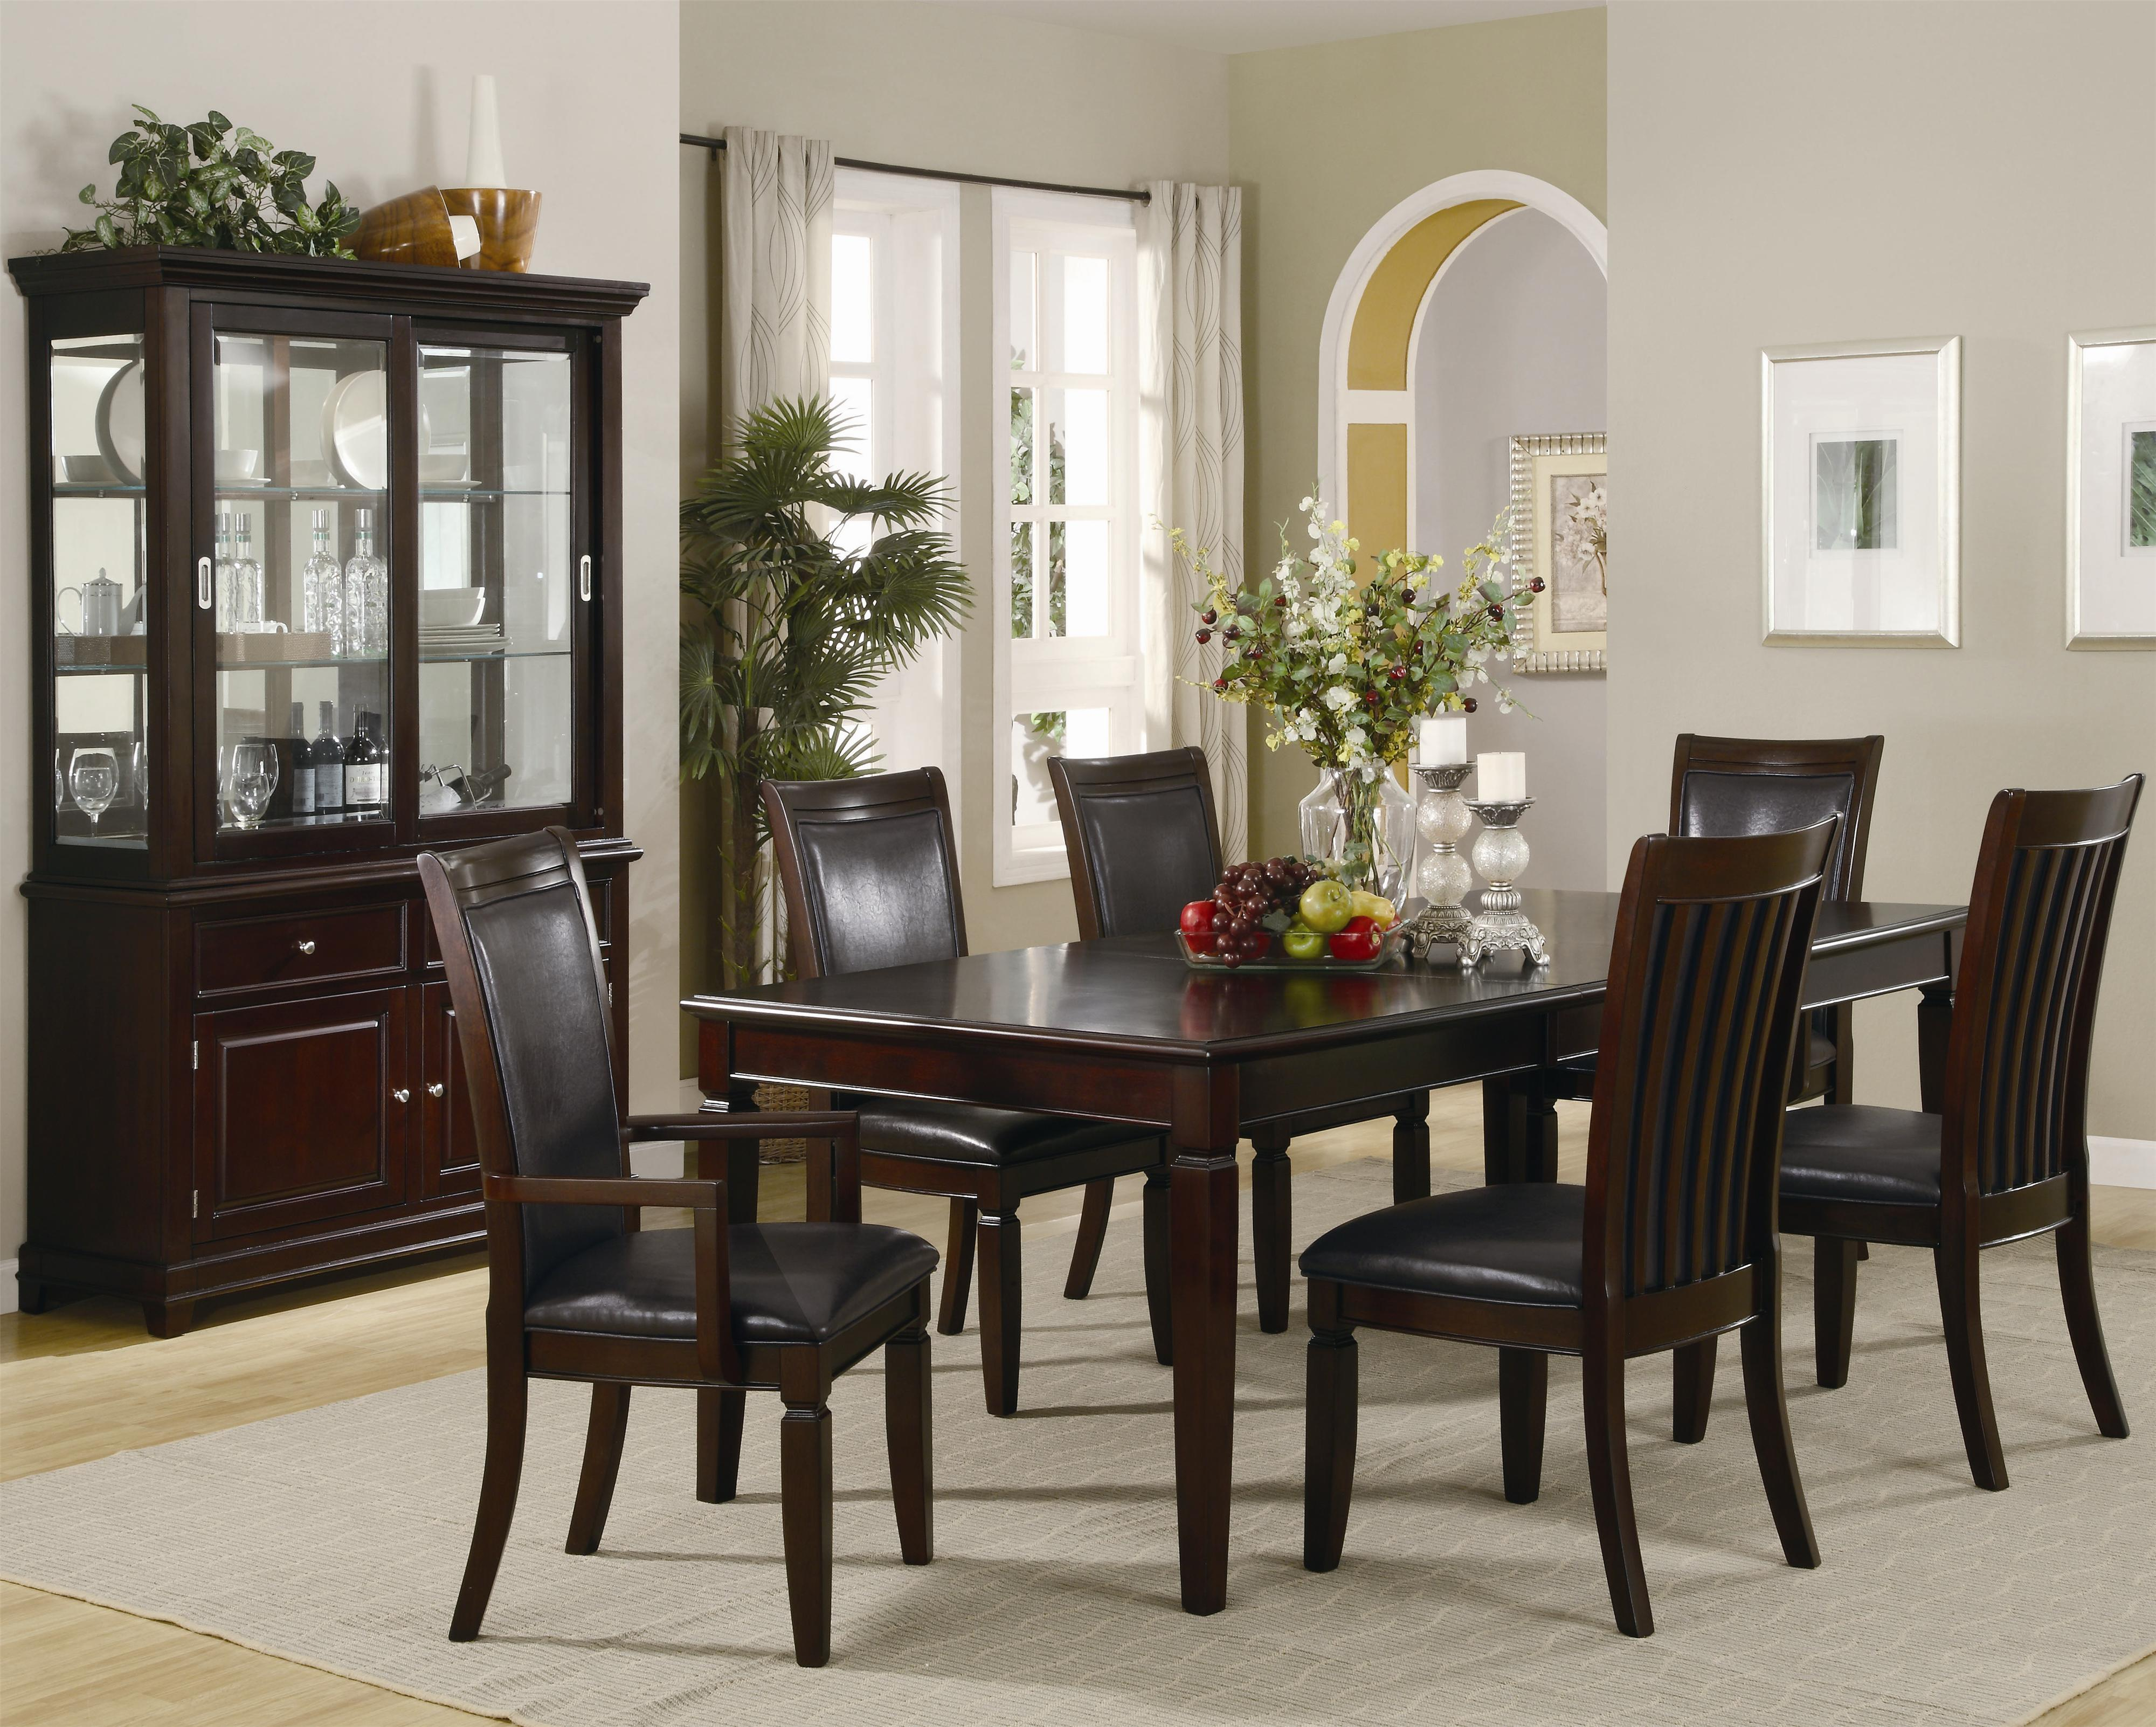 Formal dining room tables and chairs - Coaster Ramona Formal Dining Room Buffet With Hutch Coaster Fine Furniture